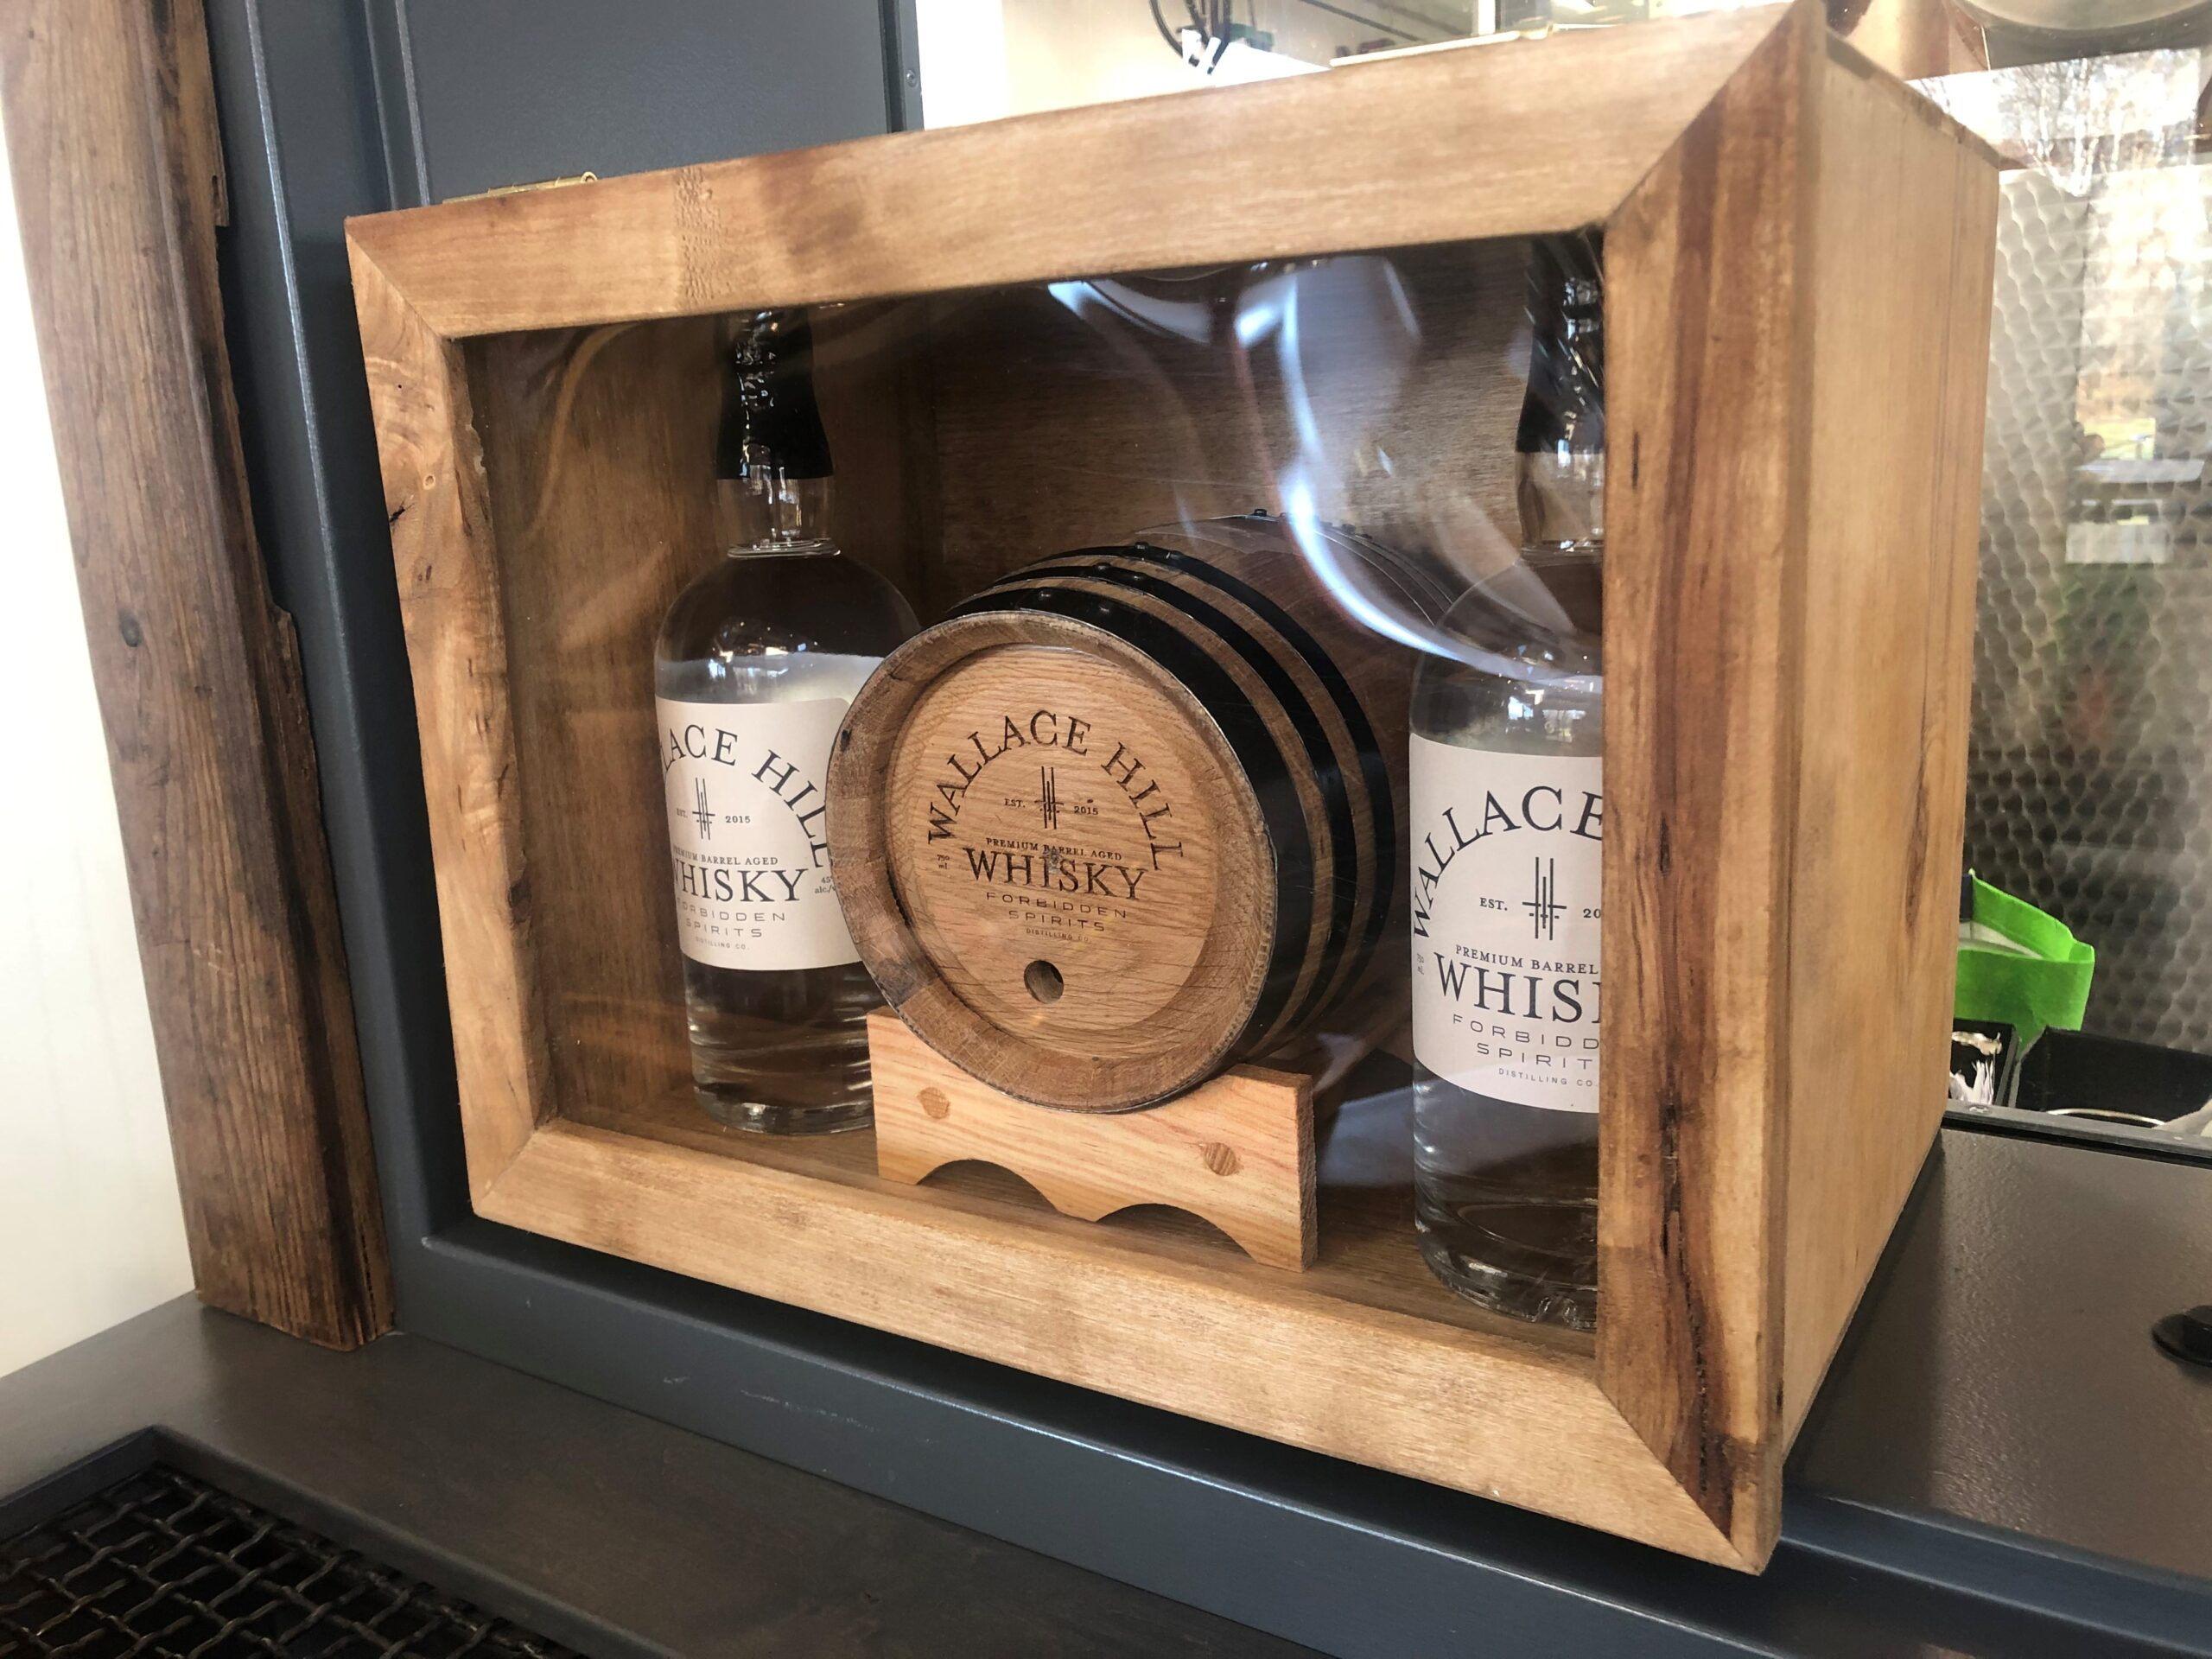 Wallace Hill Whisky Gift Set including two bottles of Wallace Hill 45% ABV white spirit, oak aging barrel, and wooden gift box.